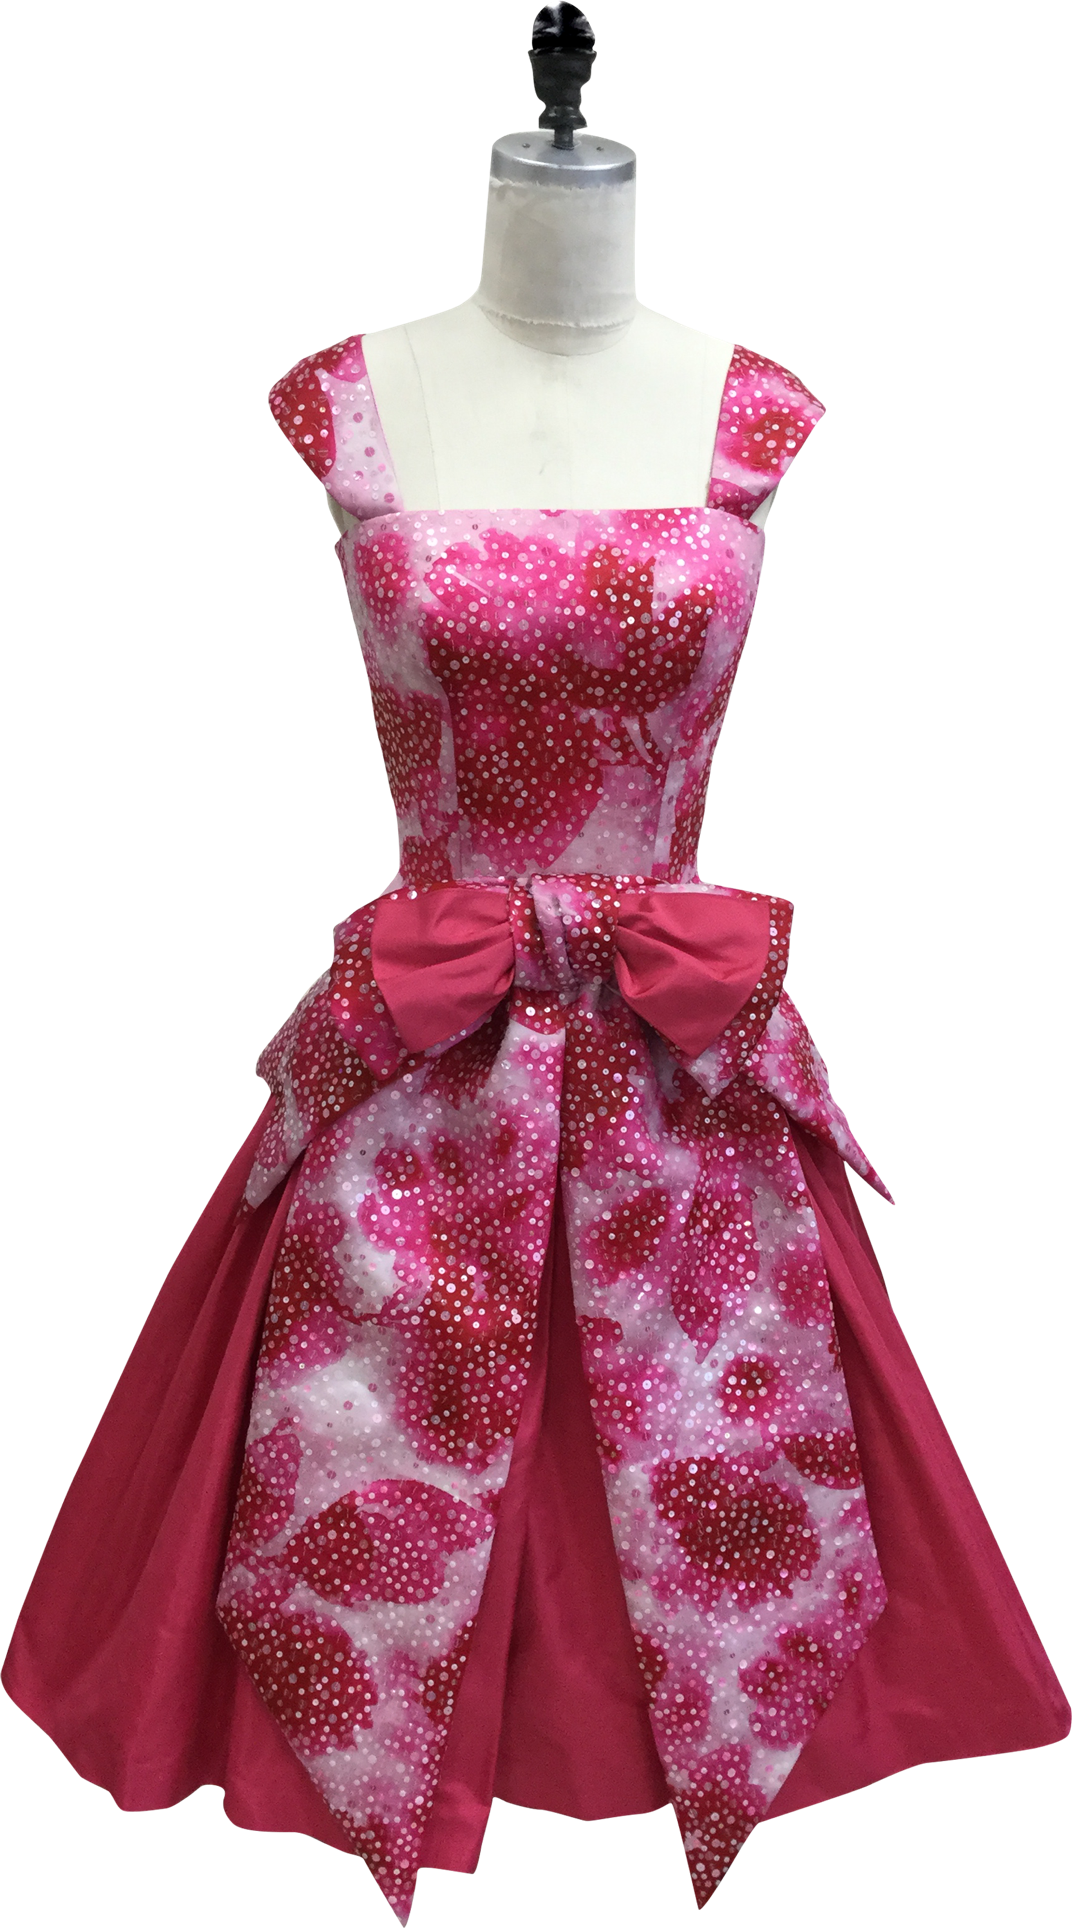 The Marvelous Mrs. Maisel Pink dress on mannequin